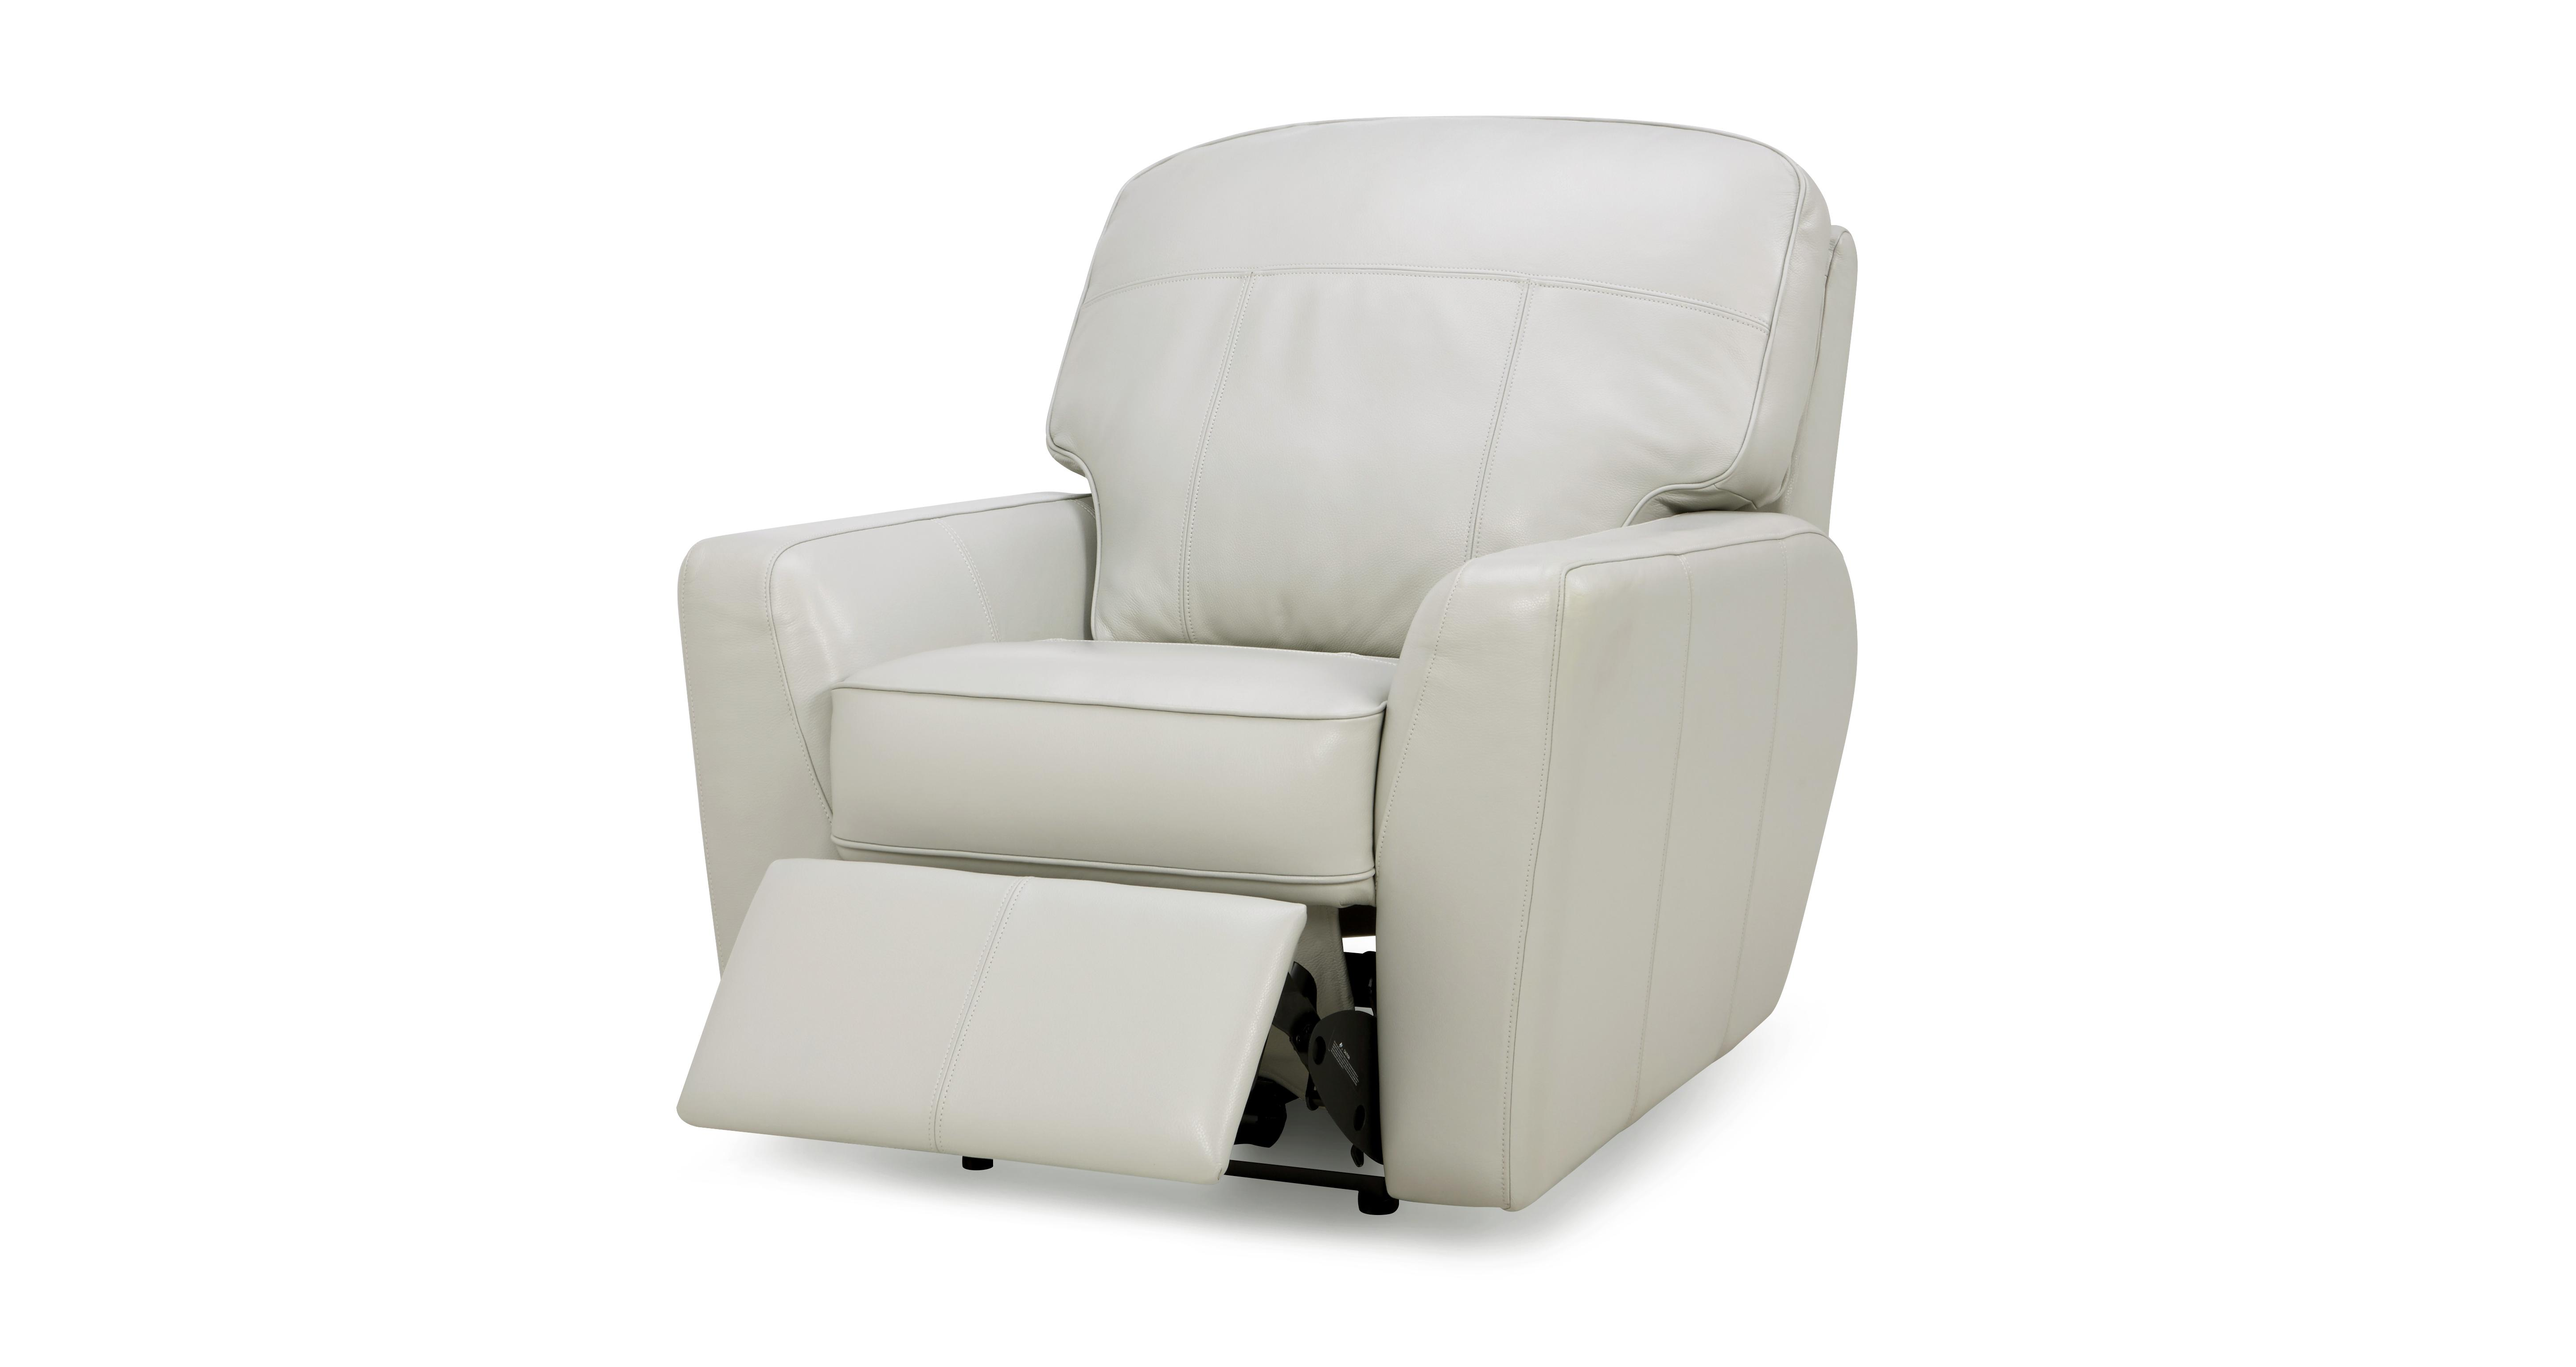 Electric Recliner Leather Chairs Sophia Leather Electric Recliner Chair Dfs